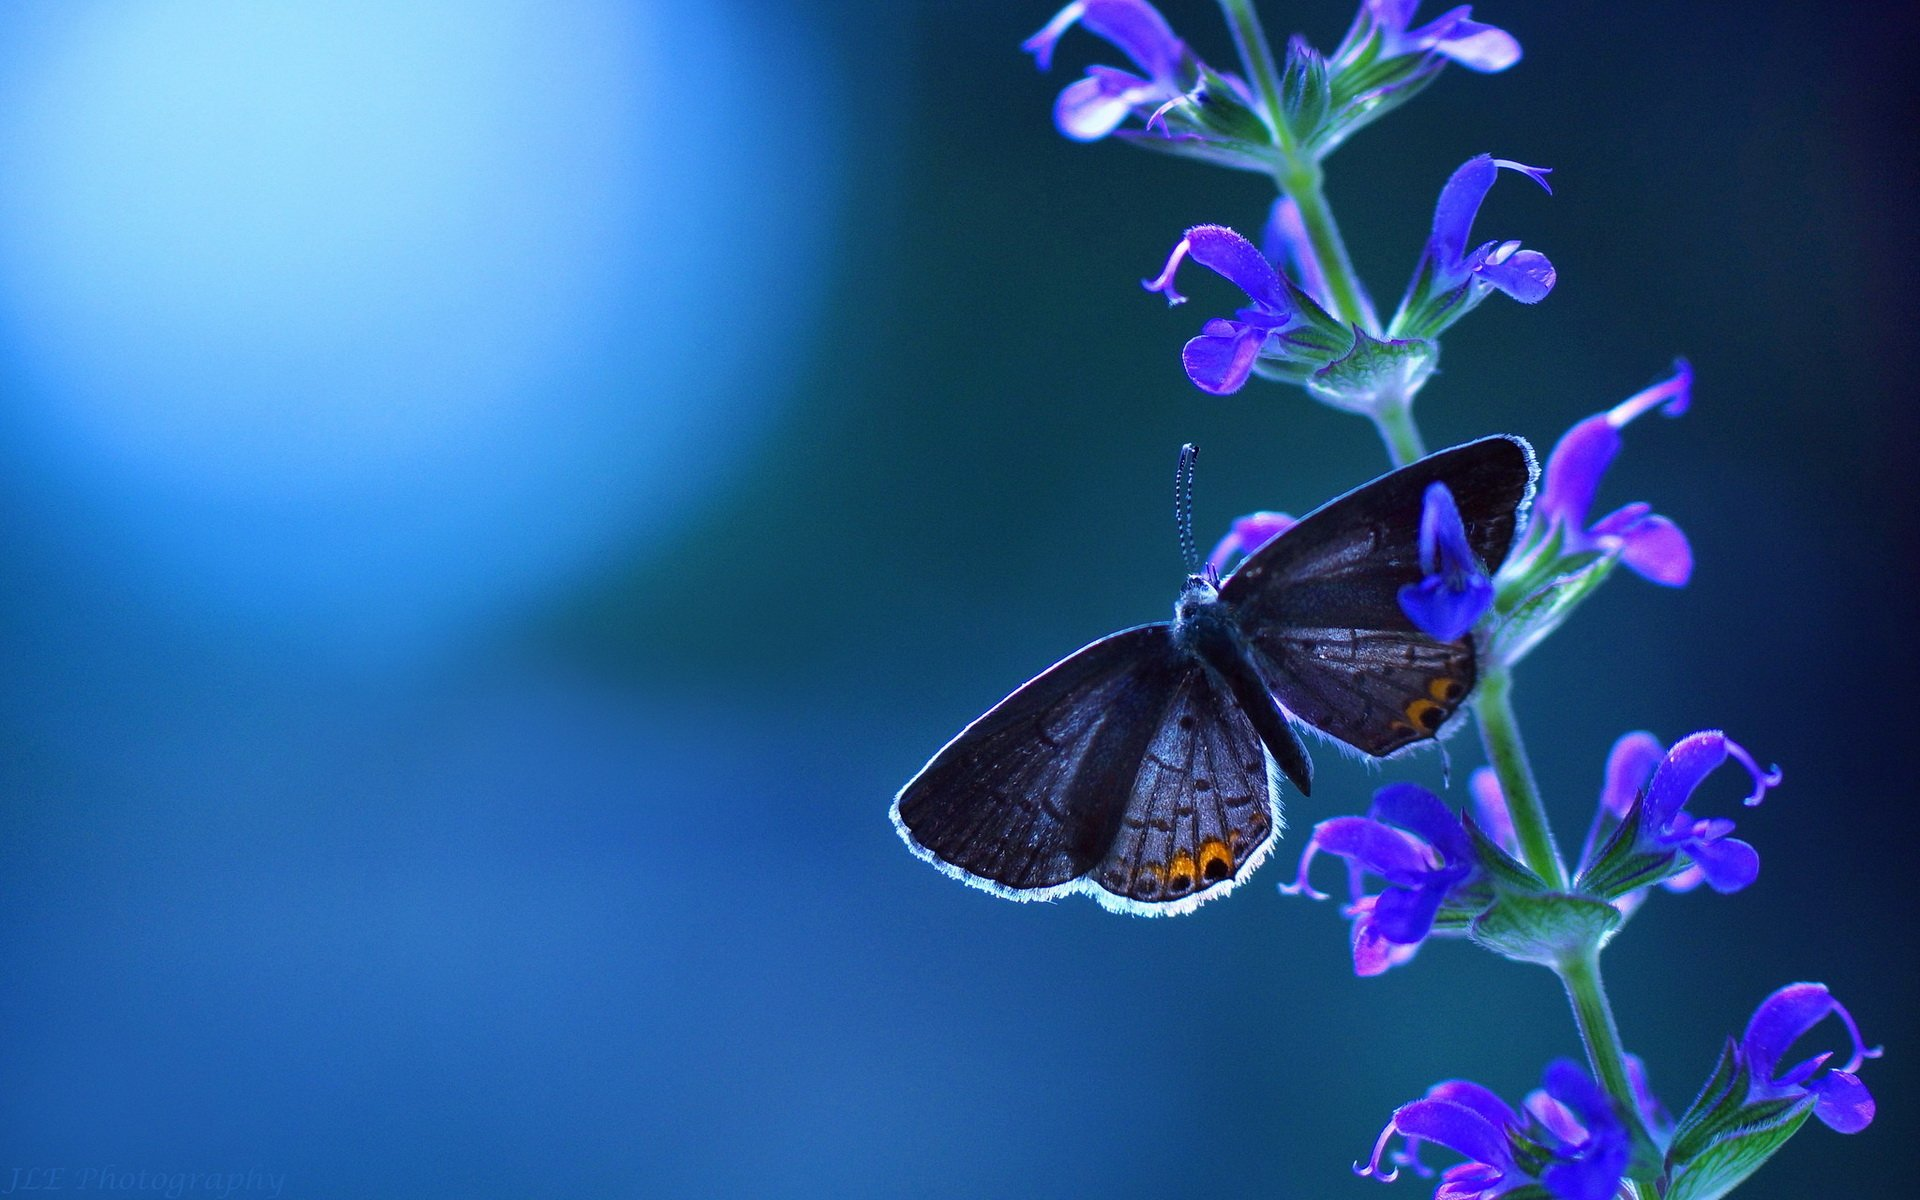 Butterfly HD Wallpaper Background Image 1920x1200 ID553073 1920x1200